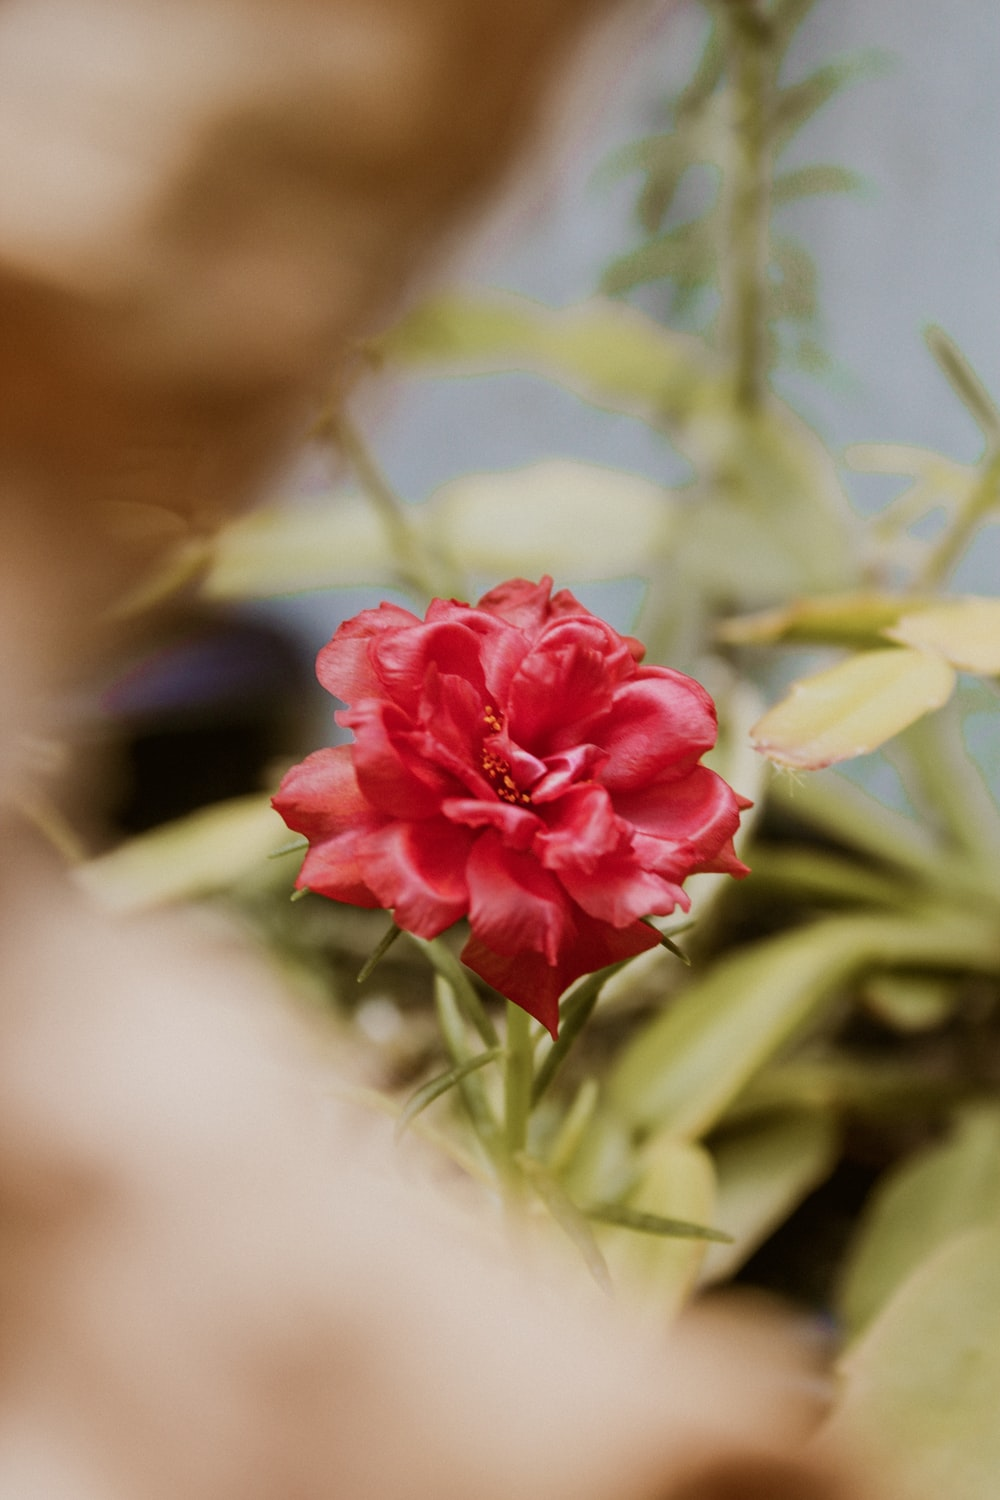 red petaled flower close up photo